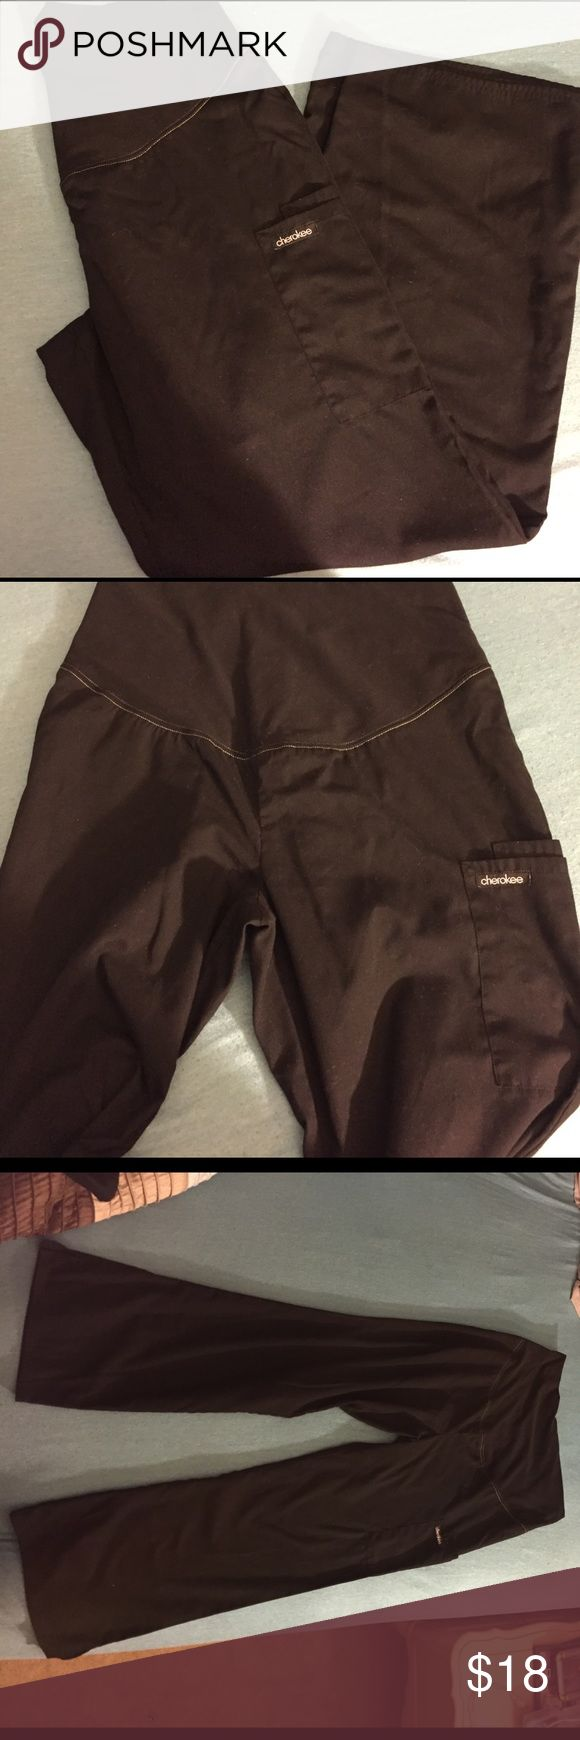 Size small maternity scrub pants Cherokee brand size small maternity scrub pants. In great condition. Pocket on the side and one on the back plus the stretchy belly band. Cherokee Pants